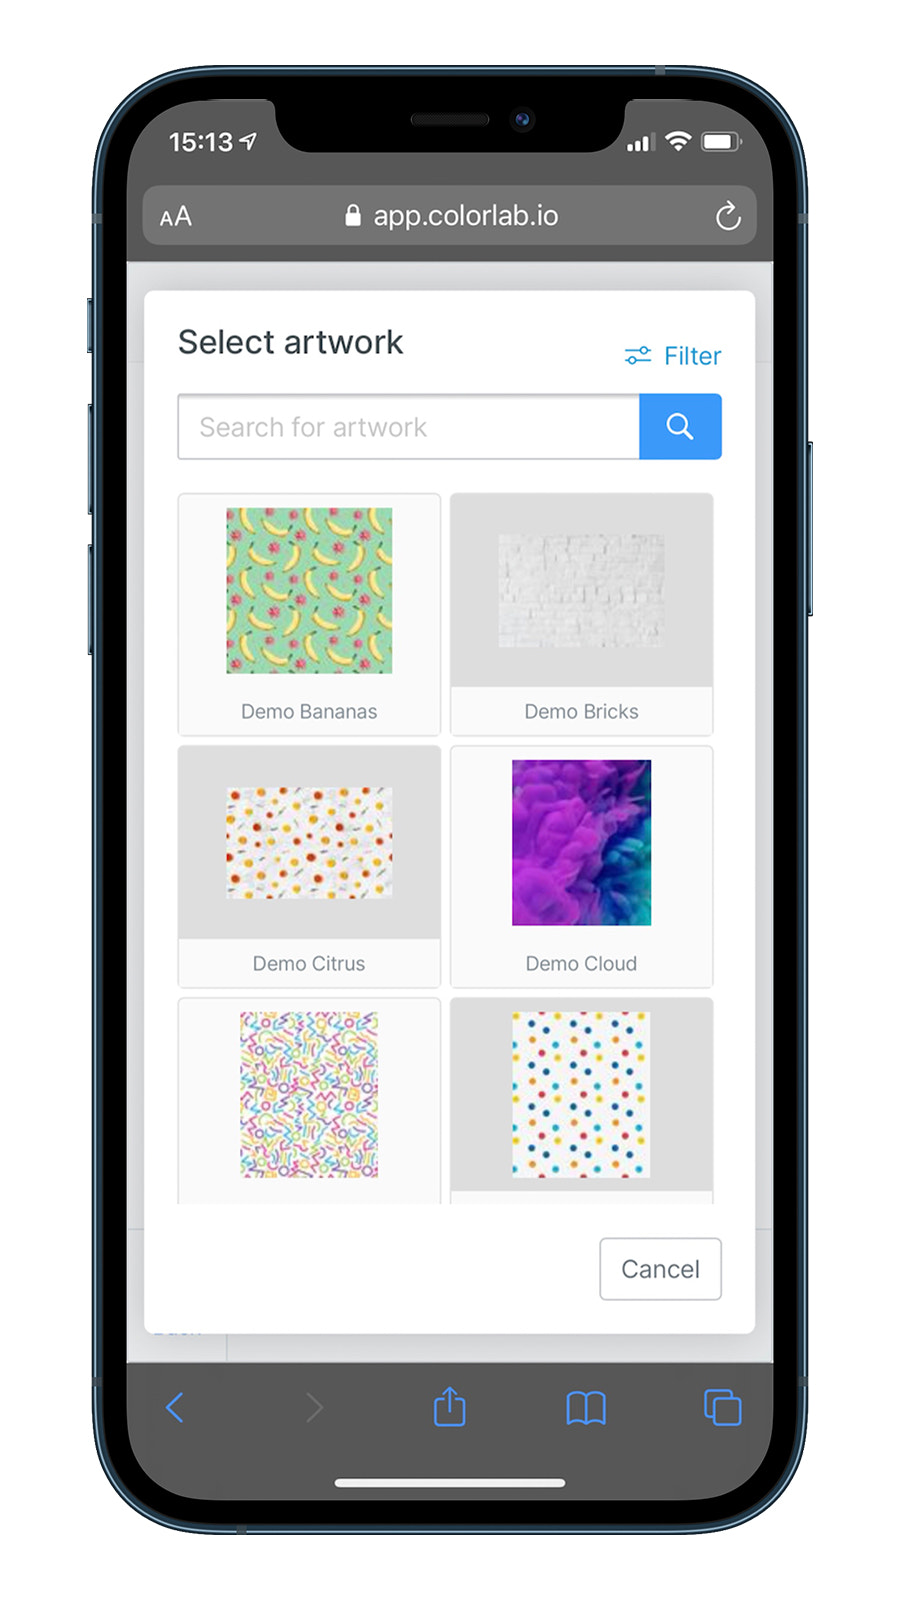 Select artwork on a mobile device